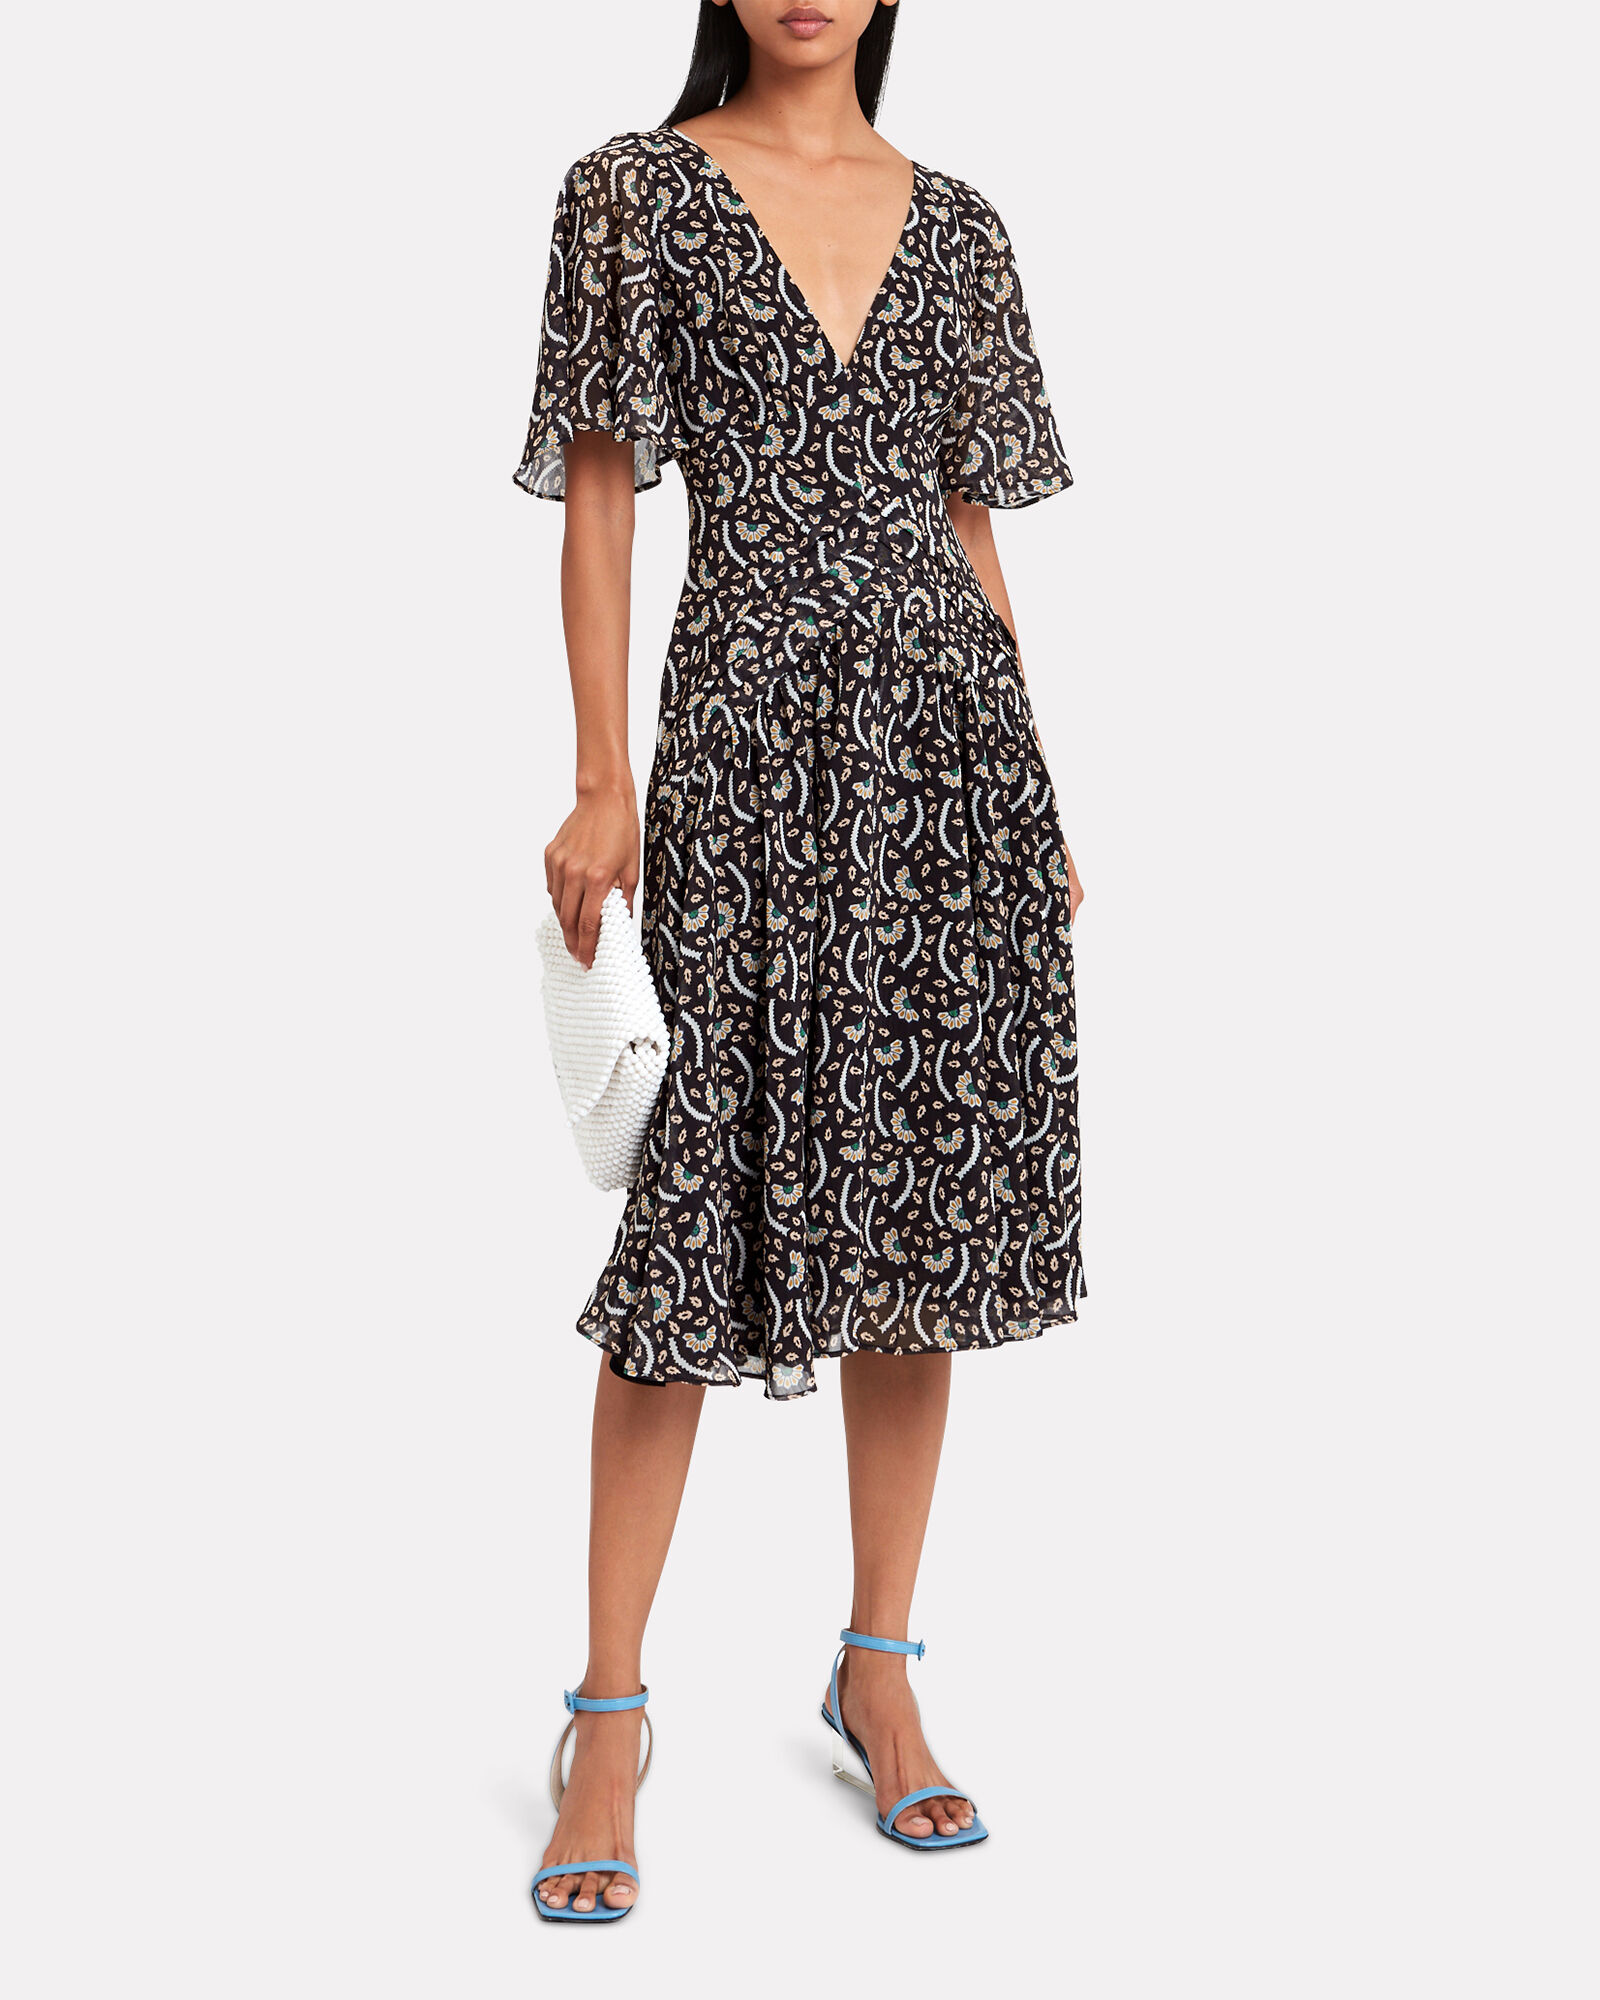 Anise Kabuki Crepe Floral Dress, BLACK/WHITE, hi-res